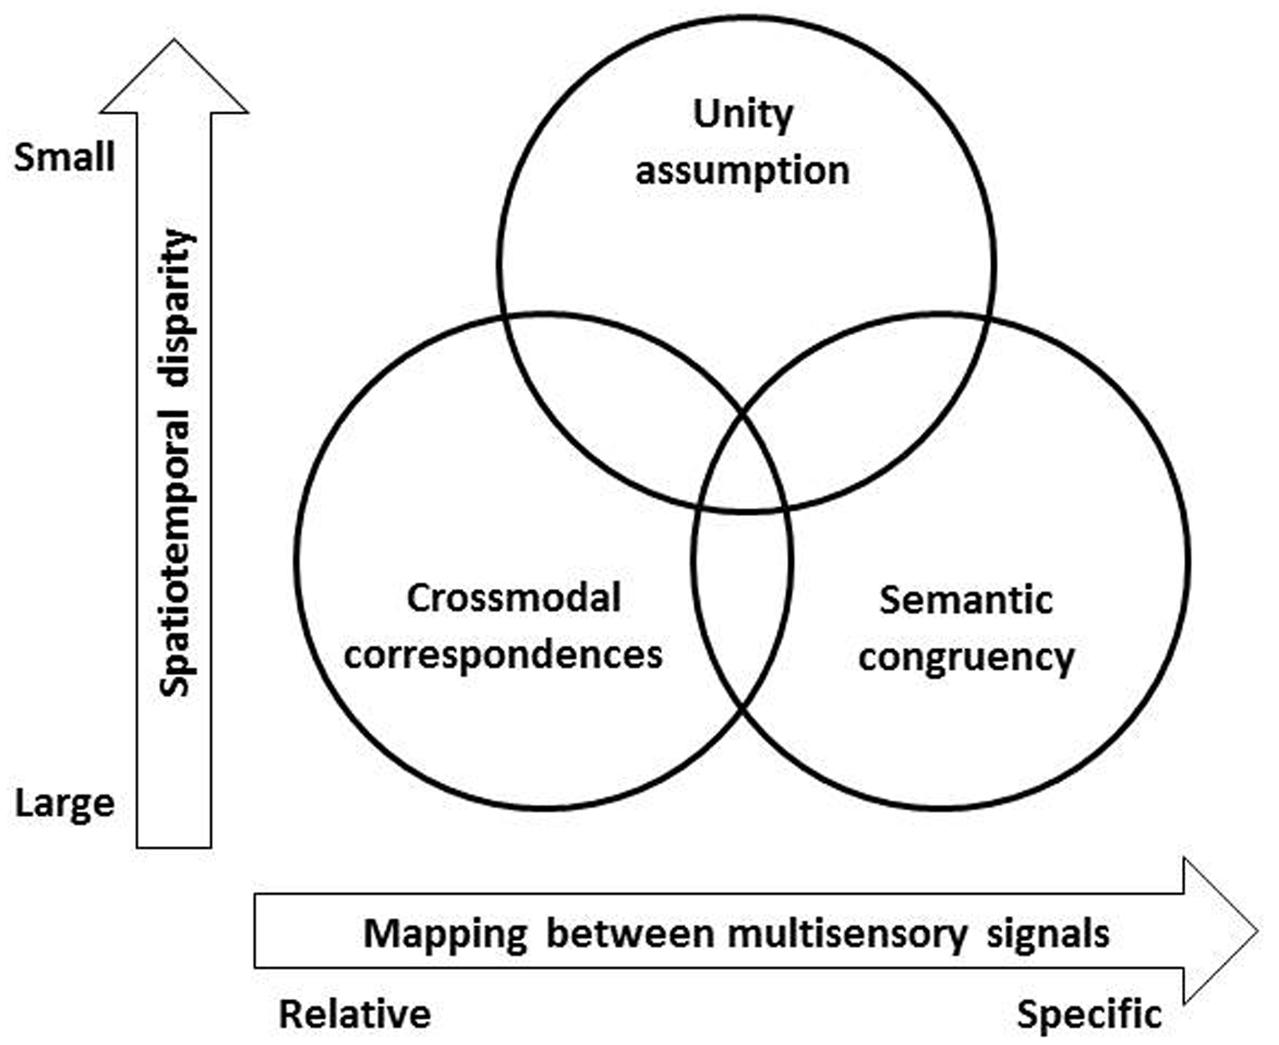 The role of olfaction in human multisensory development